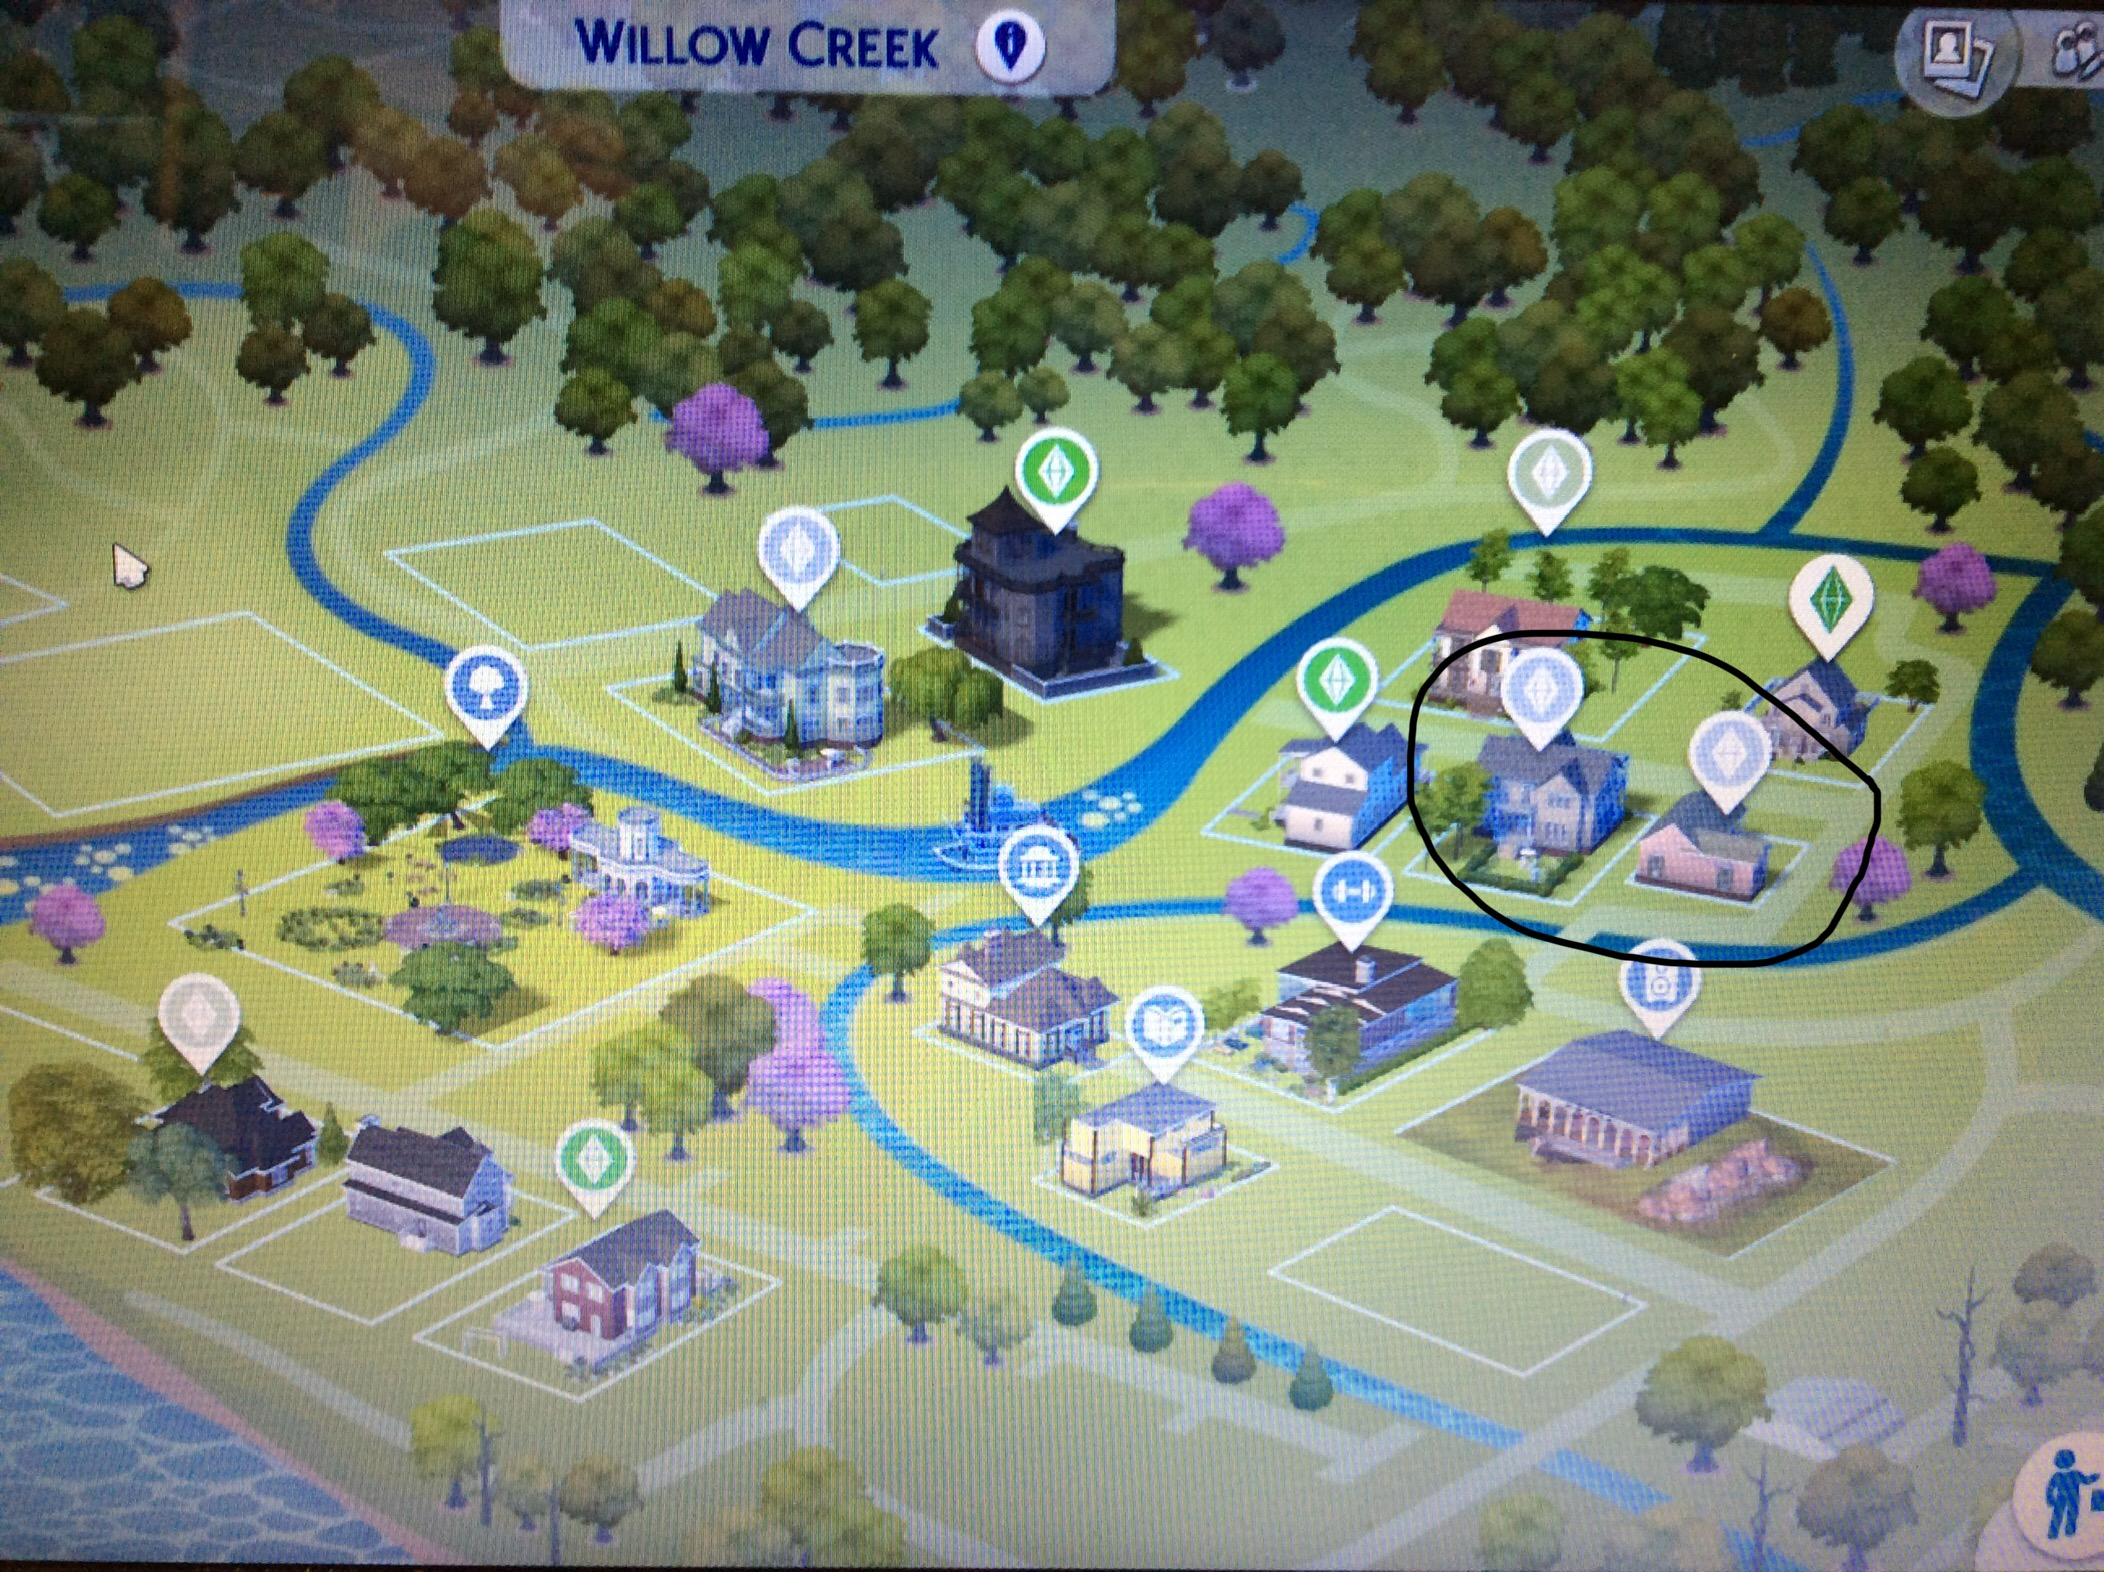 Can't select some houses/lots - Answer HQ